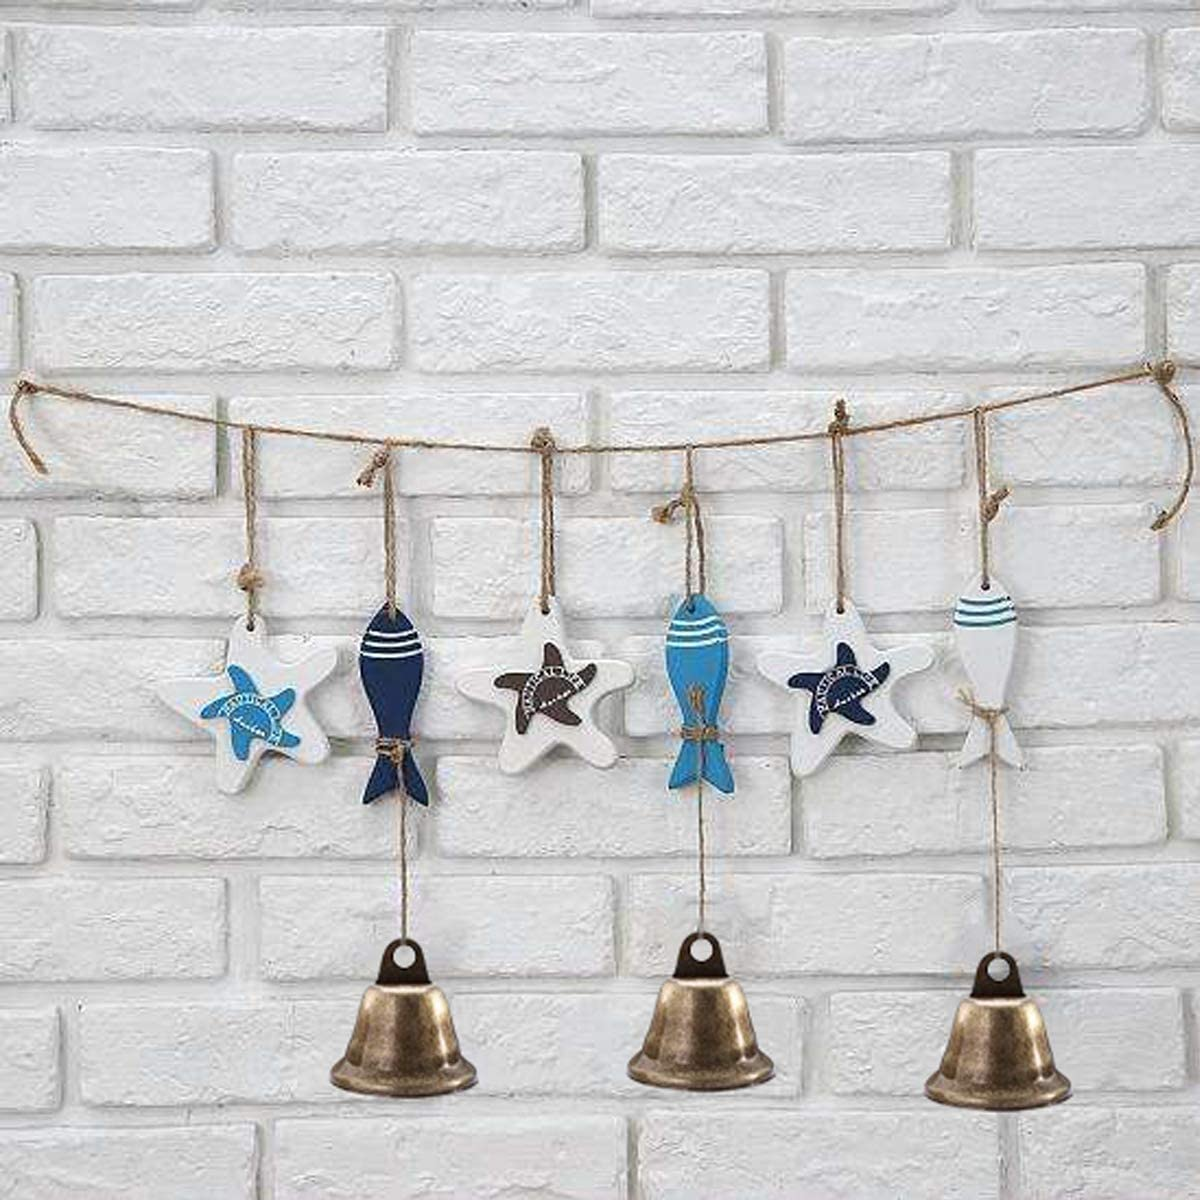 Vintage Bronze Bells Small Craft Bells Christmas Jingle Bell for Dog Potty Training Housebreaking Making Wind Chimes Retro Bells for Handmade Accessories 1.5 inch 30PCS.